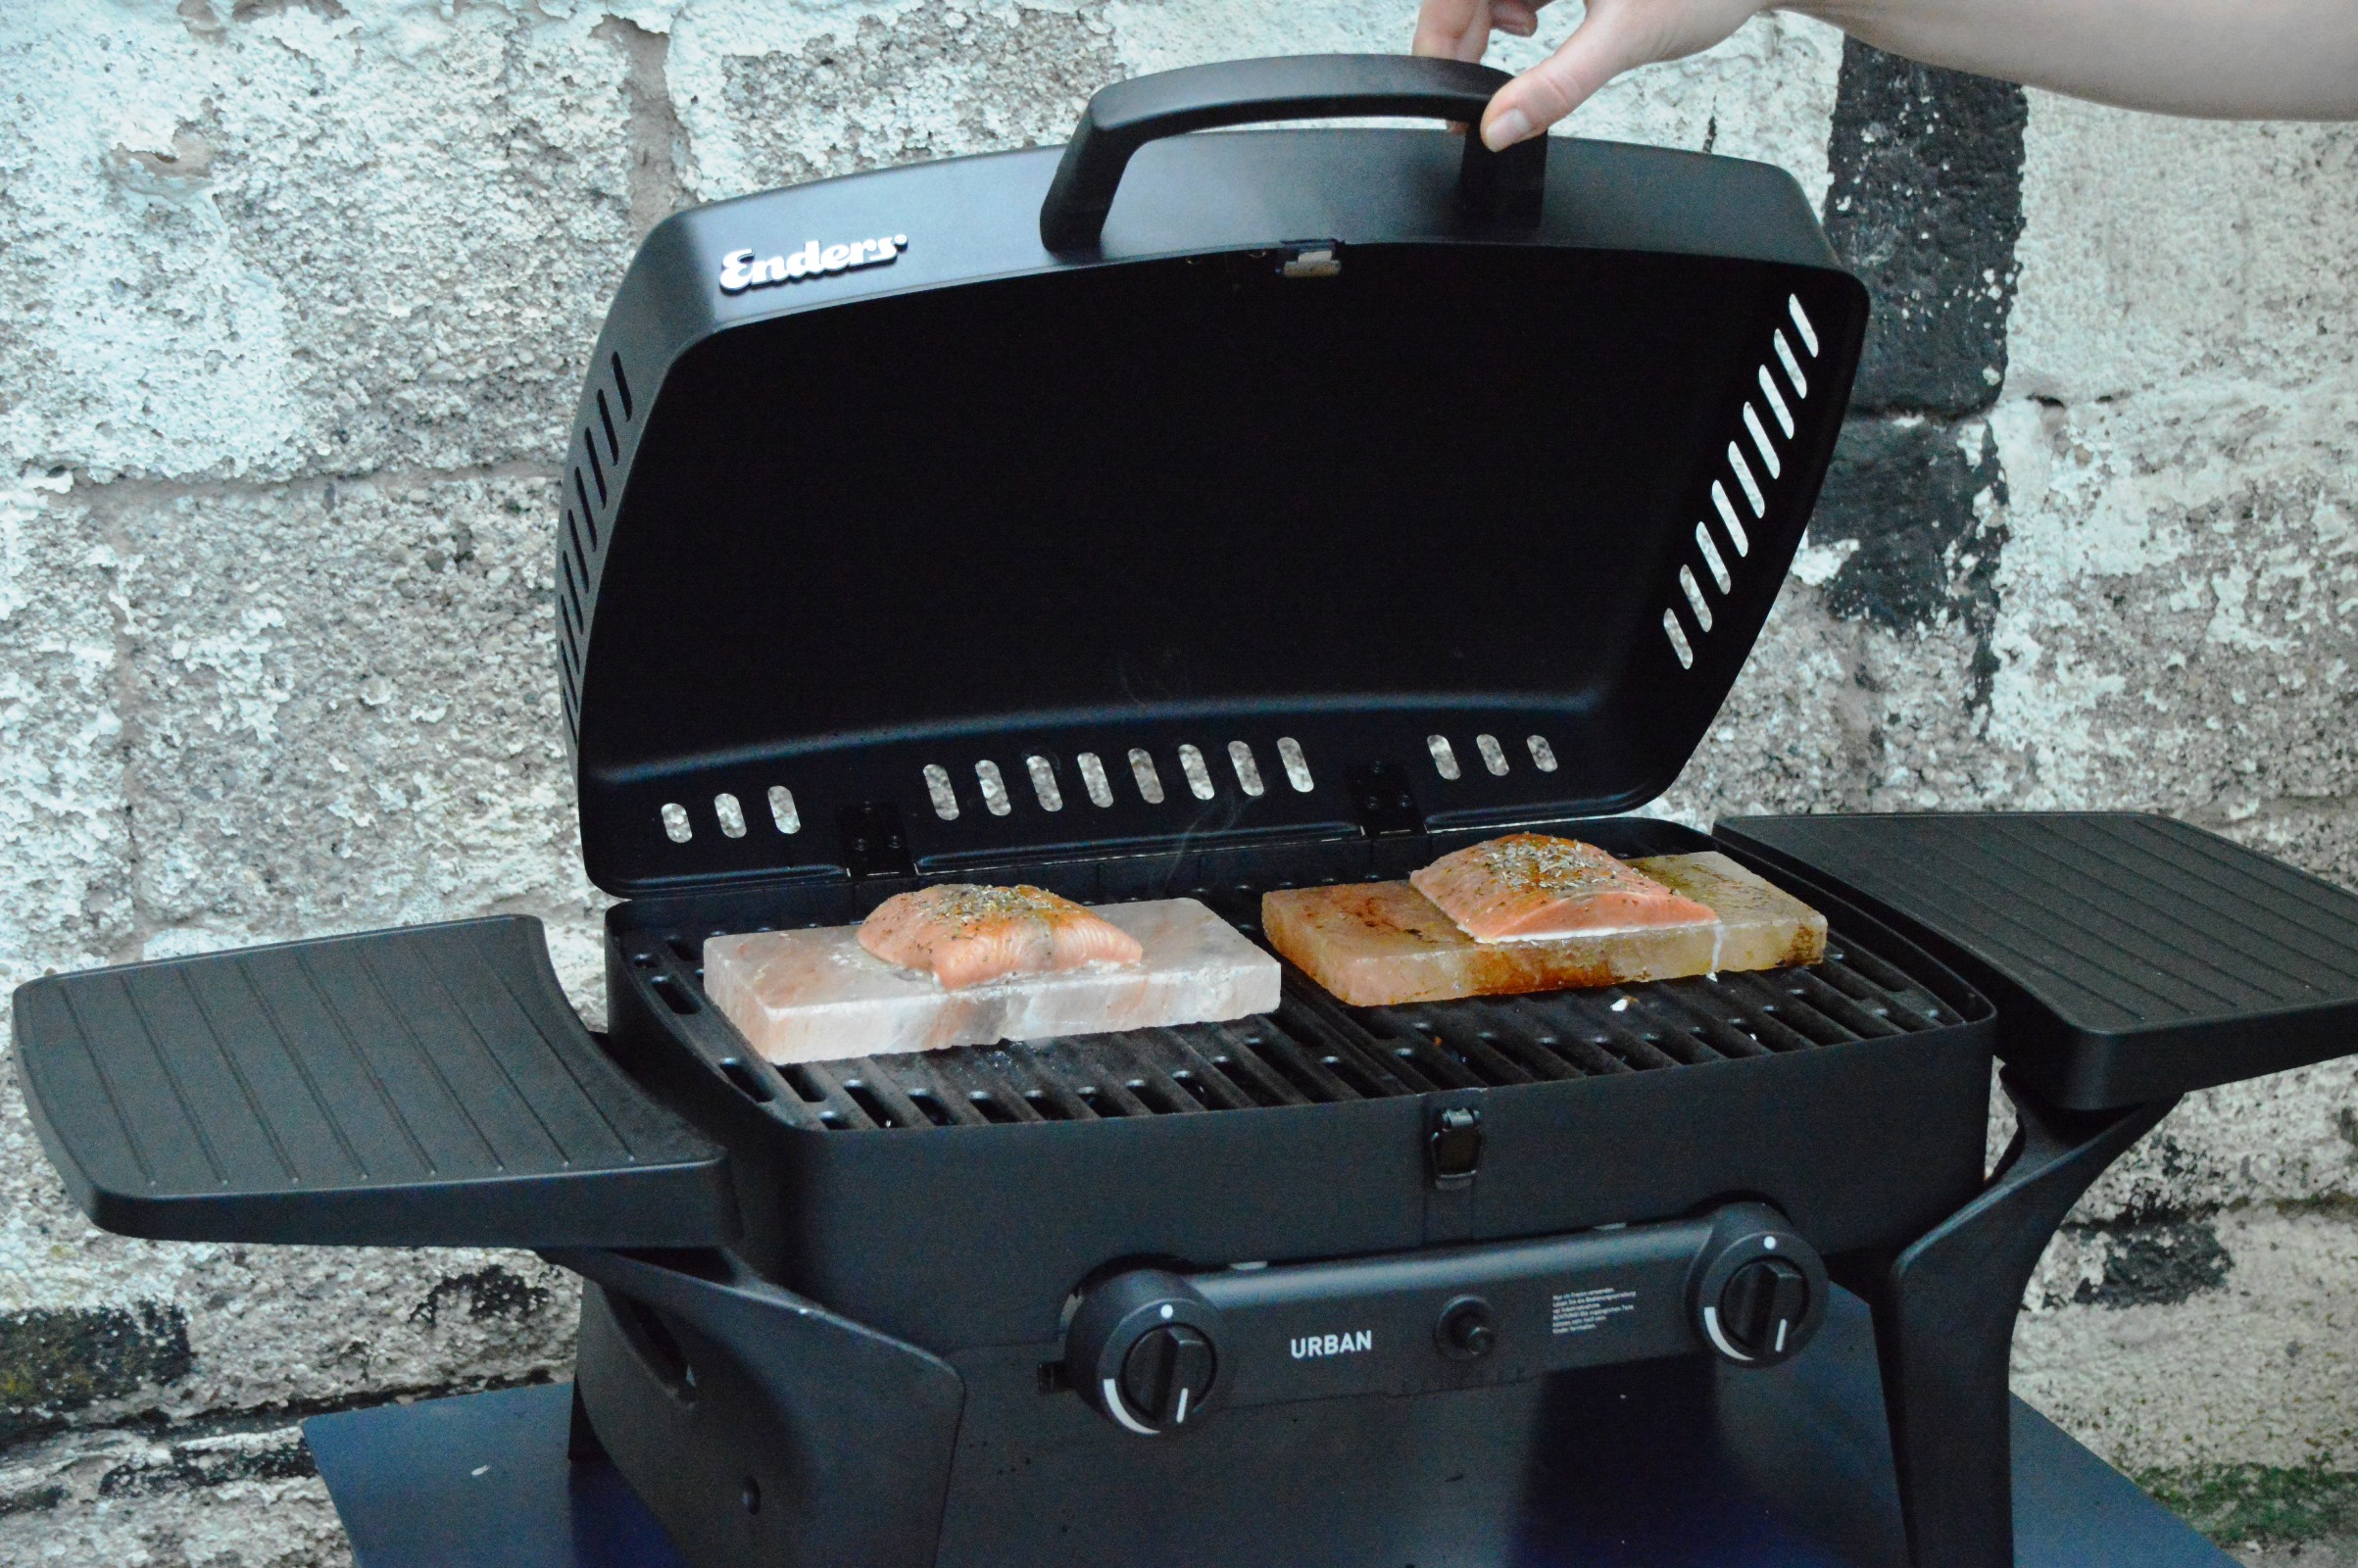 Enders Gasgrill Rostet : Angegrillt enders urban im test bacon zum steak